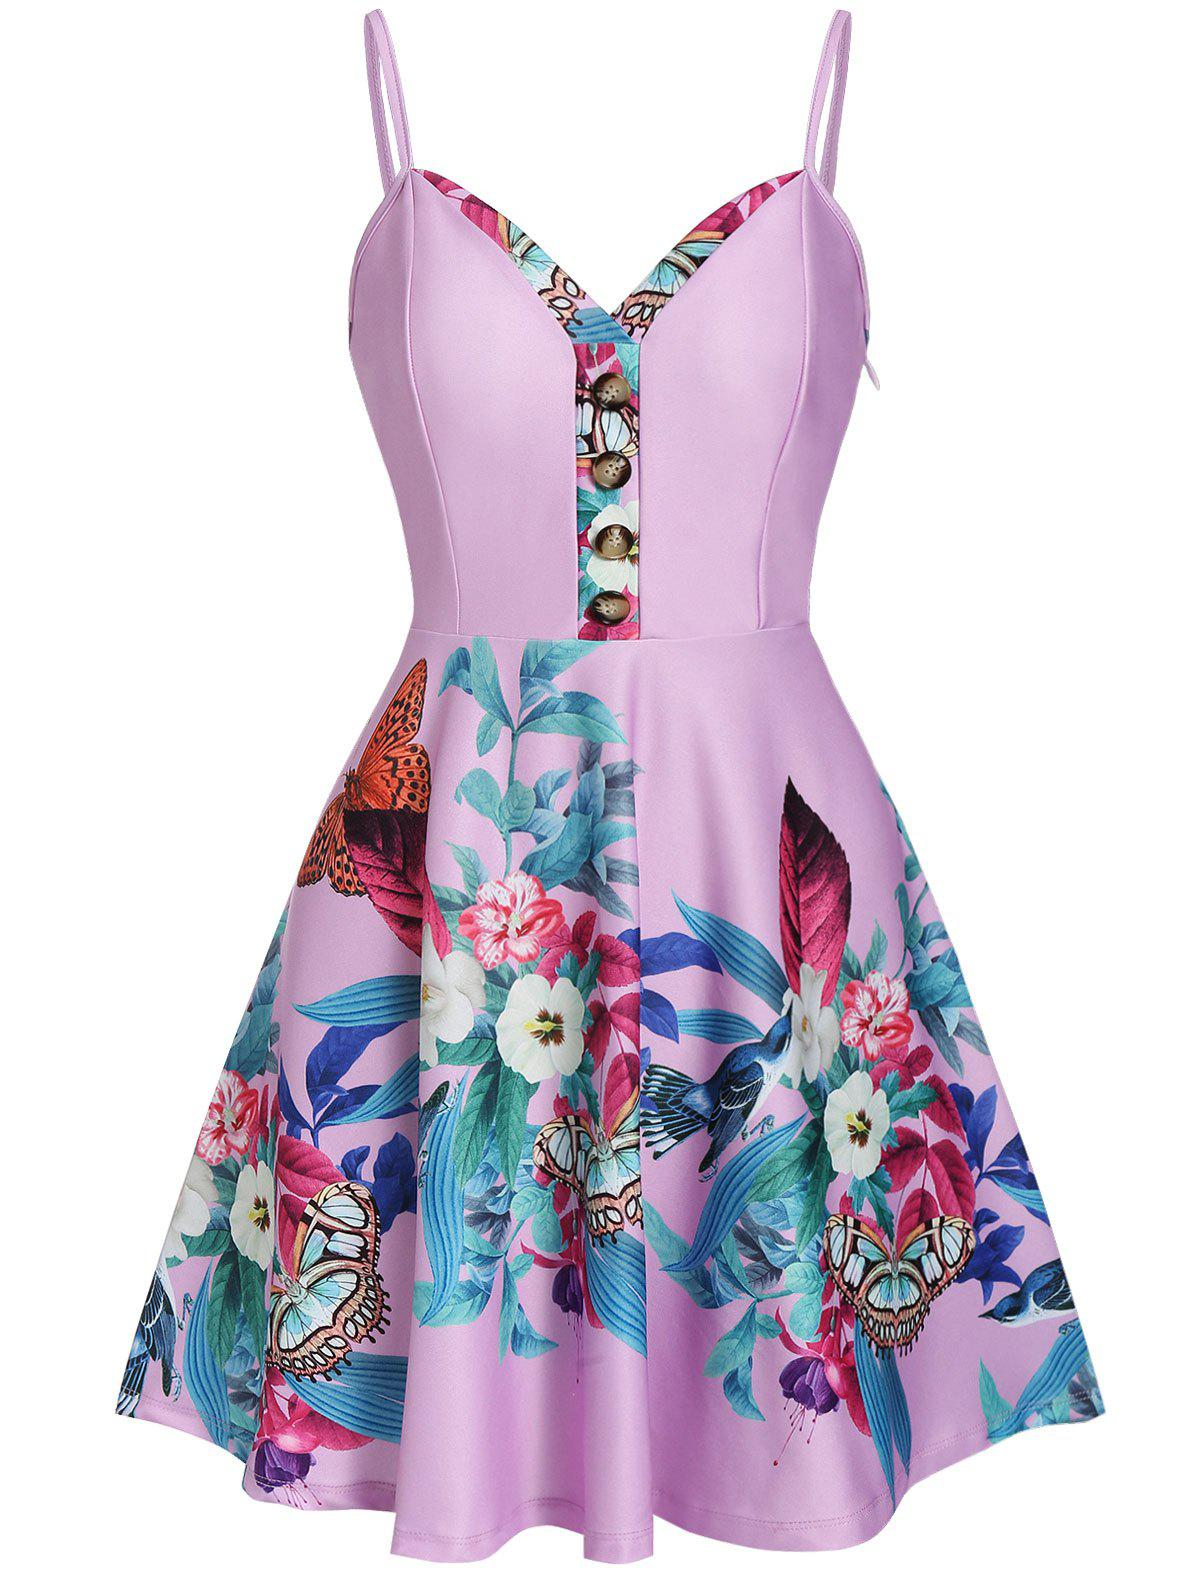 New Retro Floral Print Pin Up Dress